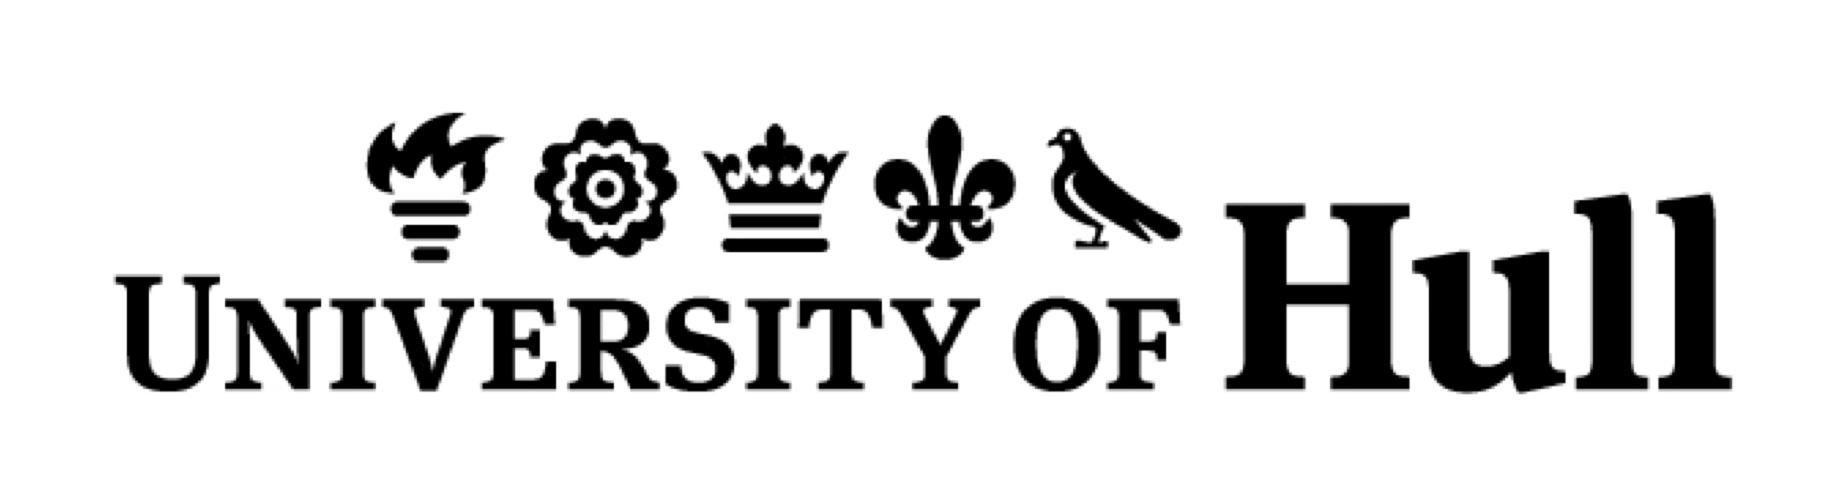 University-of-Hull-news archive